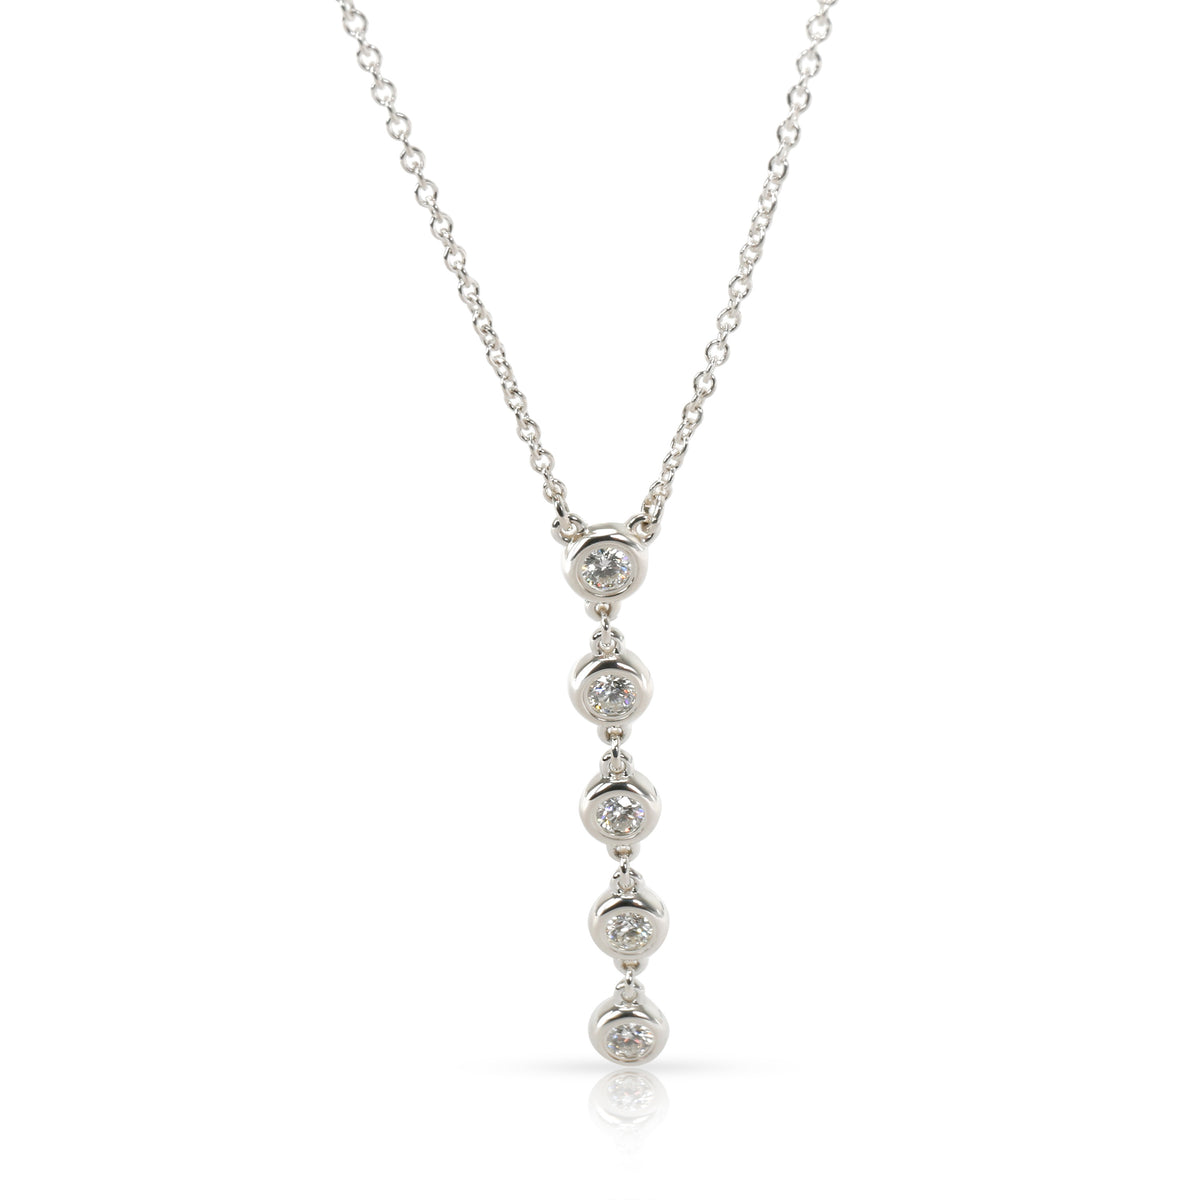 Tiffany & Co. Diamonds By The Yard Diamond Necklace in  Sterling Silver 0.25 CTW